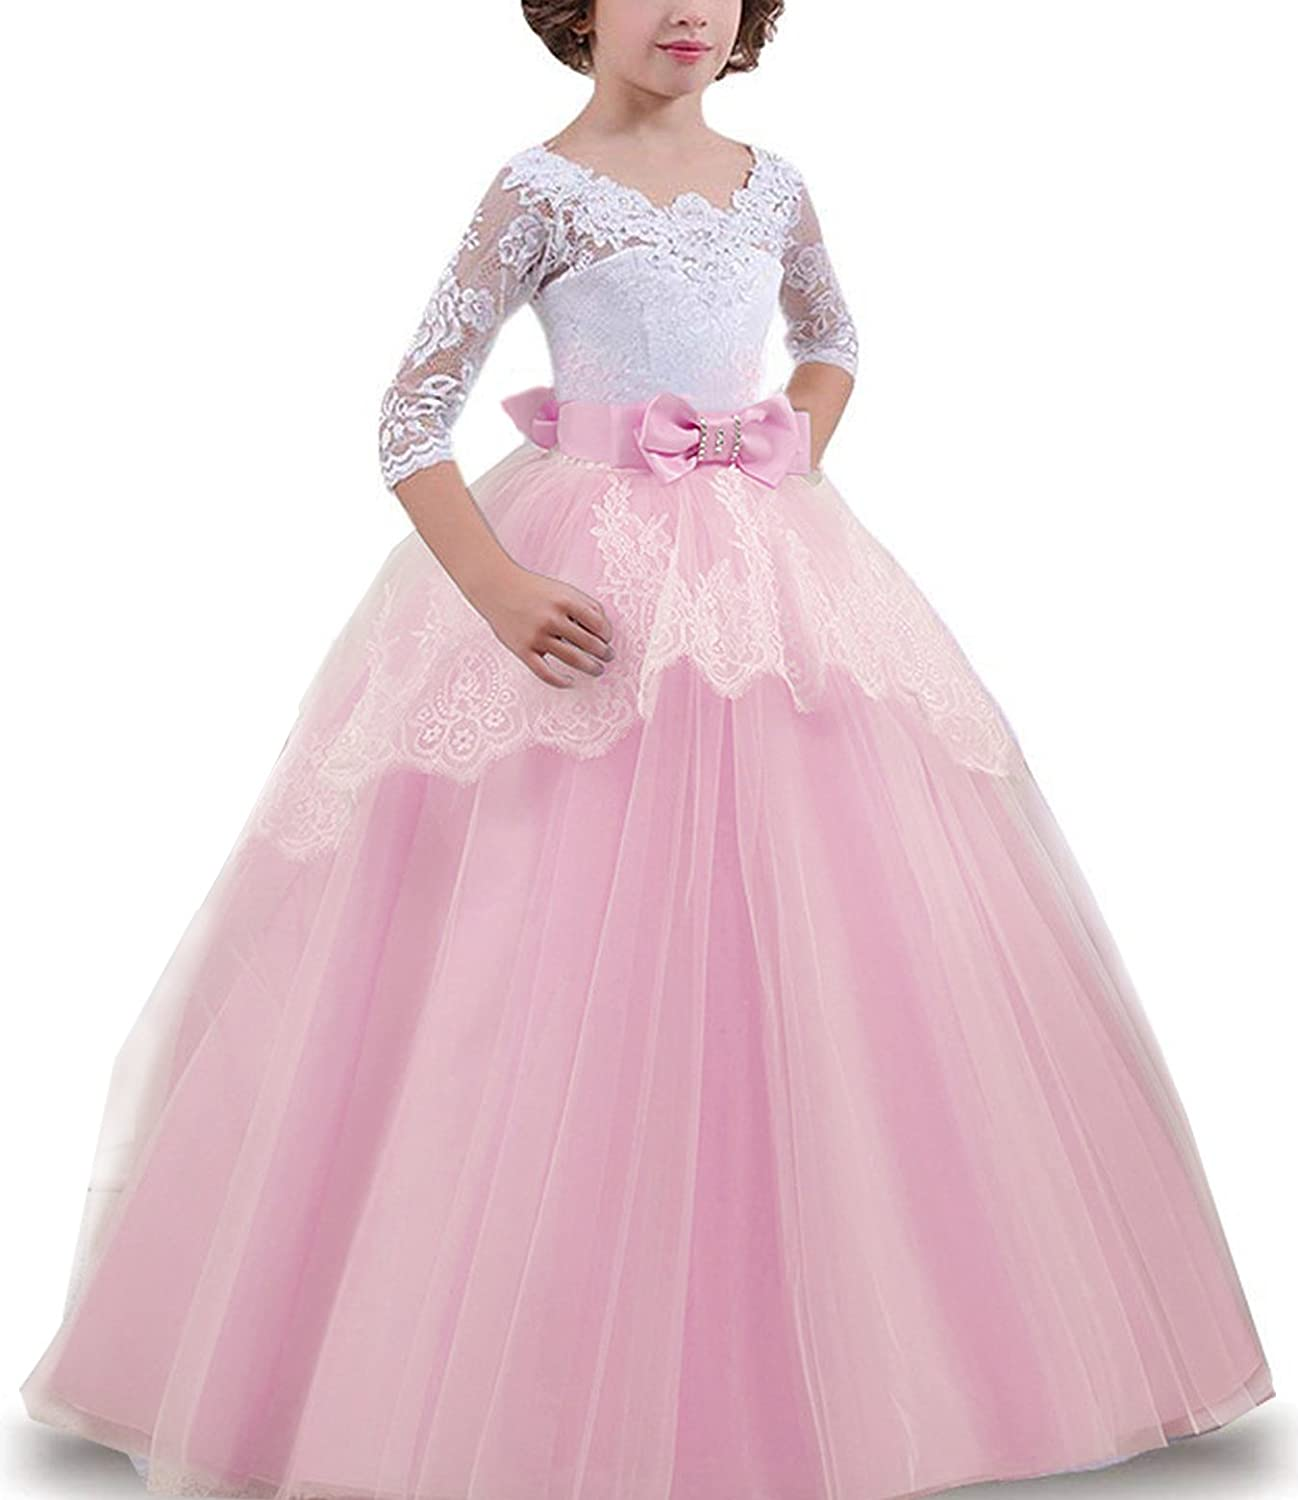 TTYAOVO Girls Lace Backless Ball Gowns Chiffon Flower Princess Pageant Party Dress